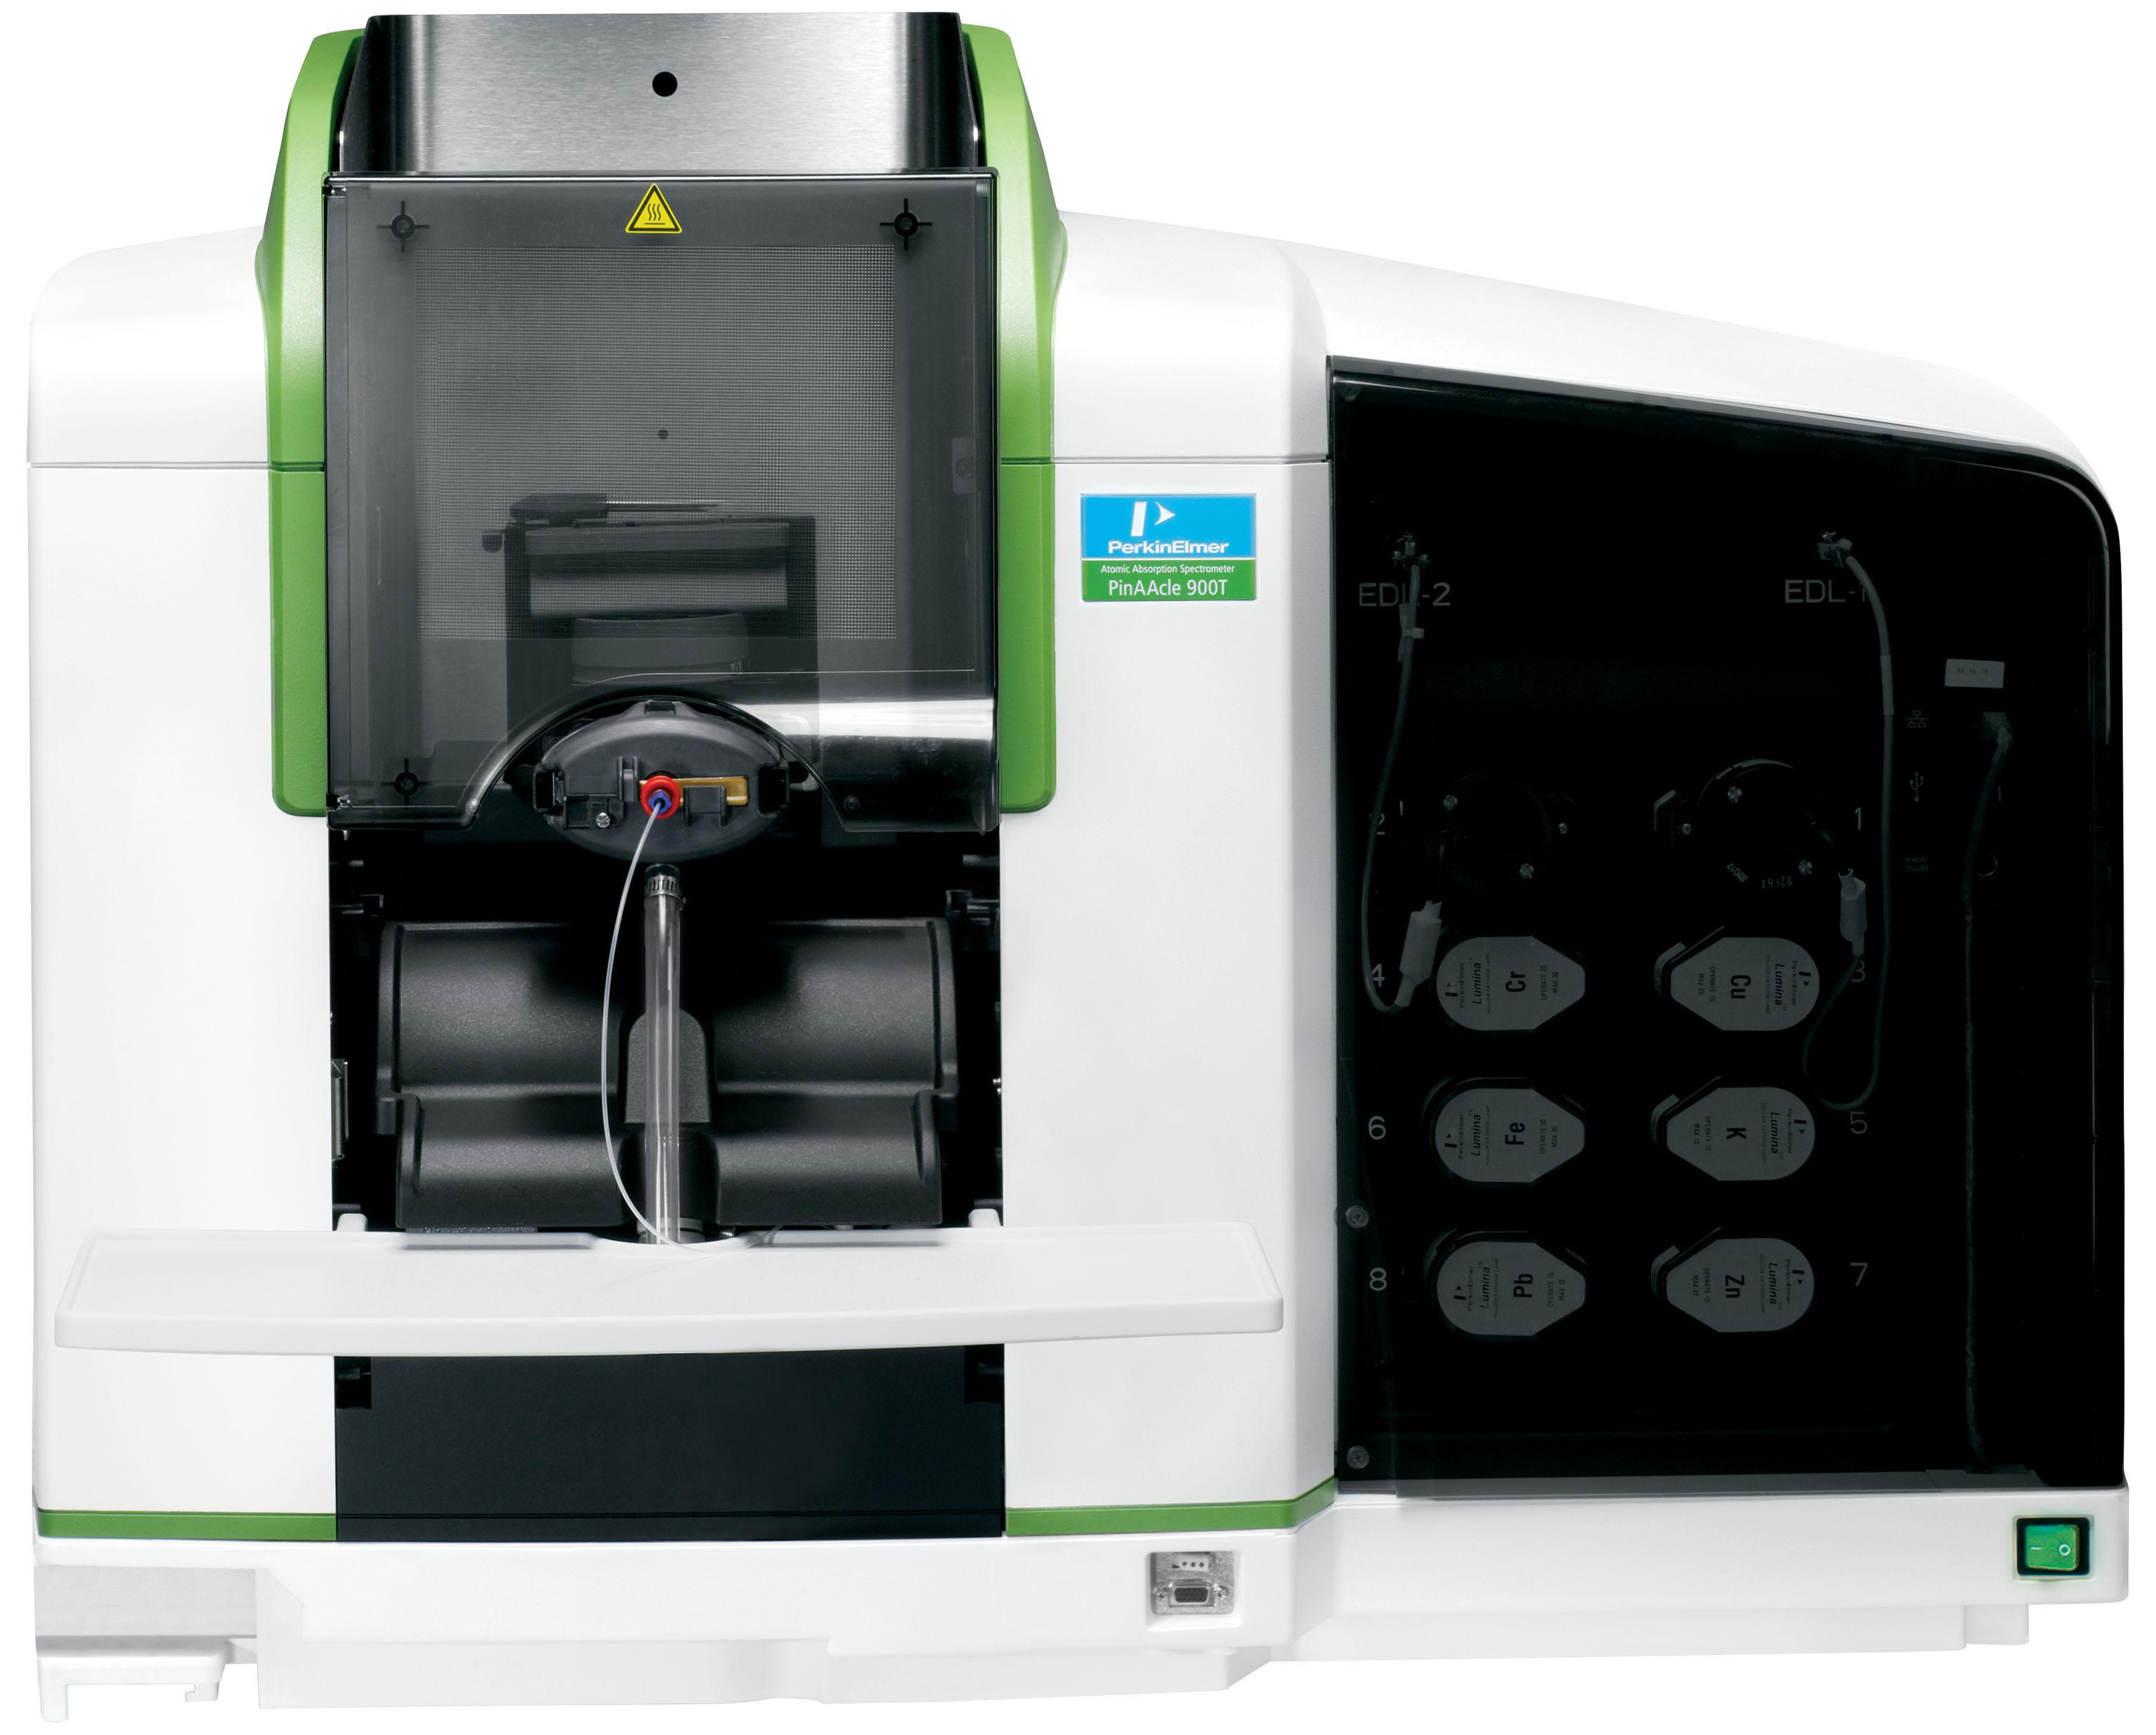 PerkinElmer PinAAcle 900 series